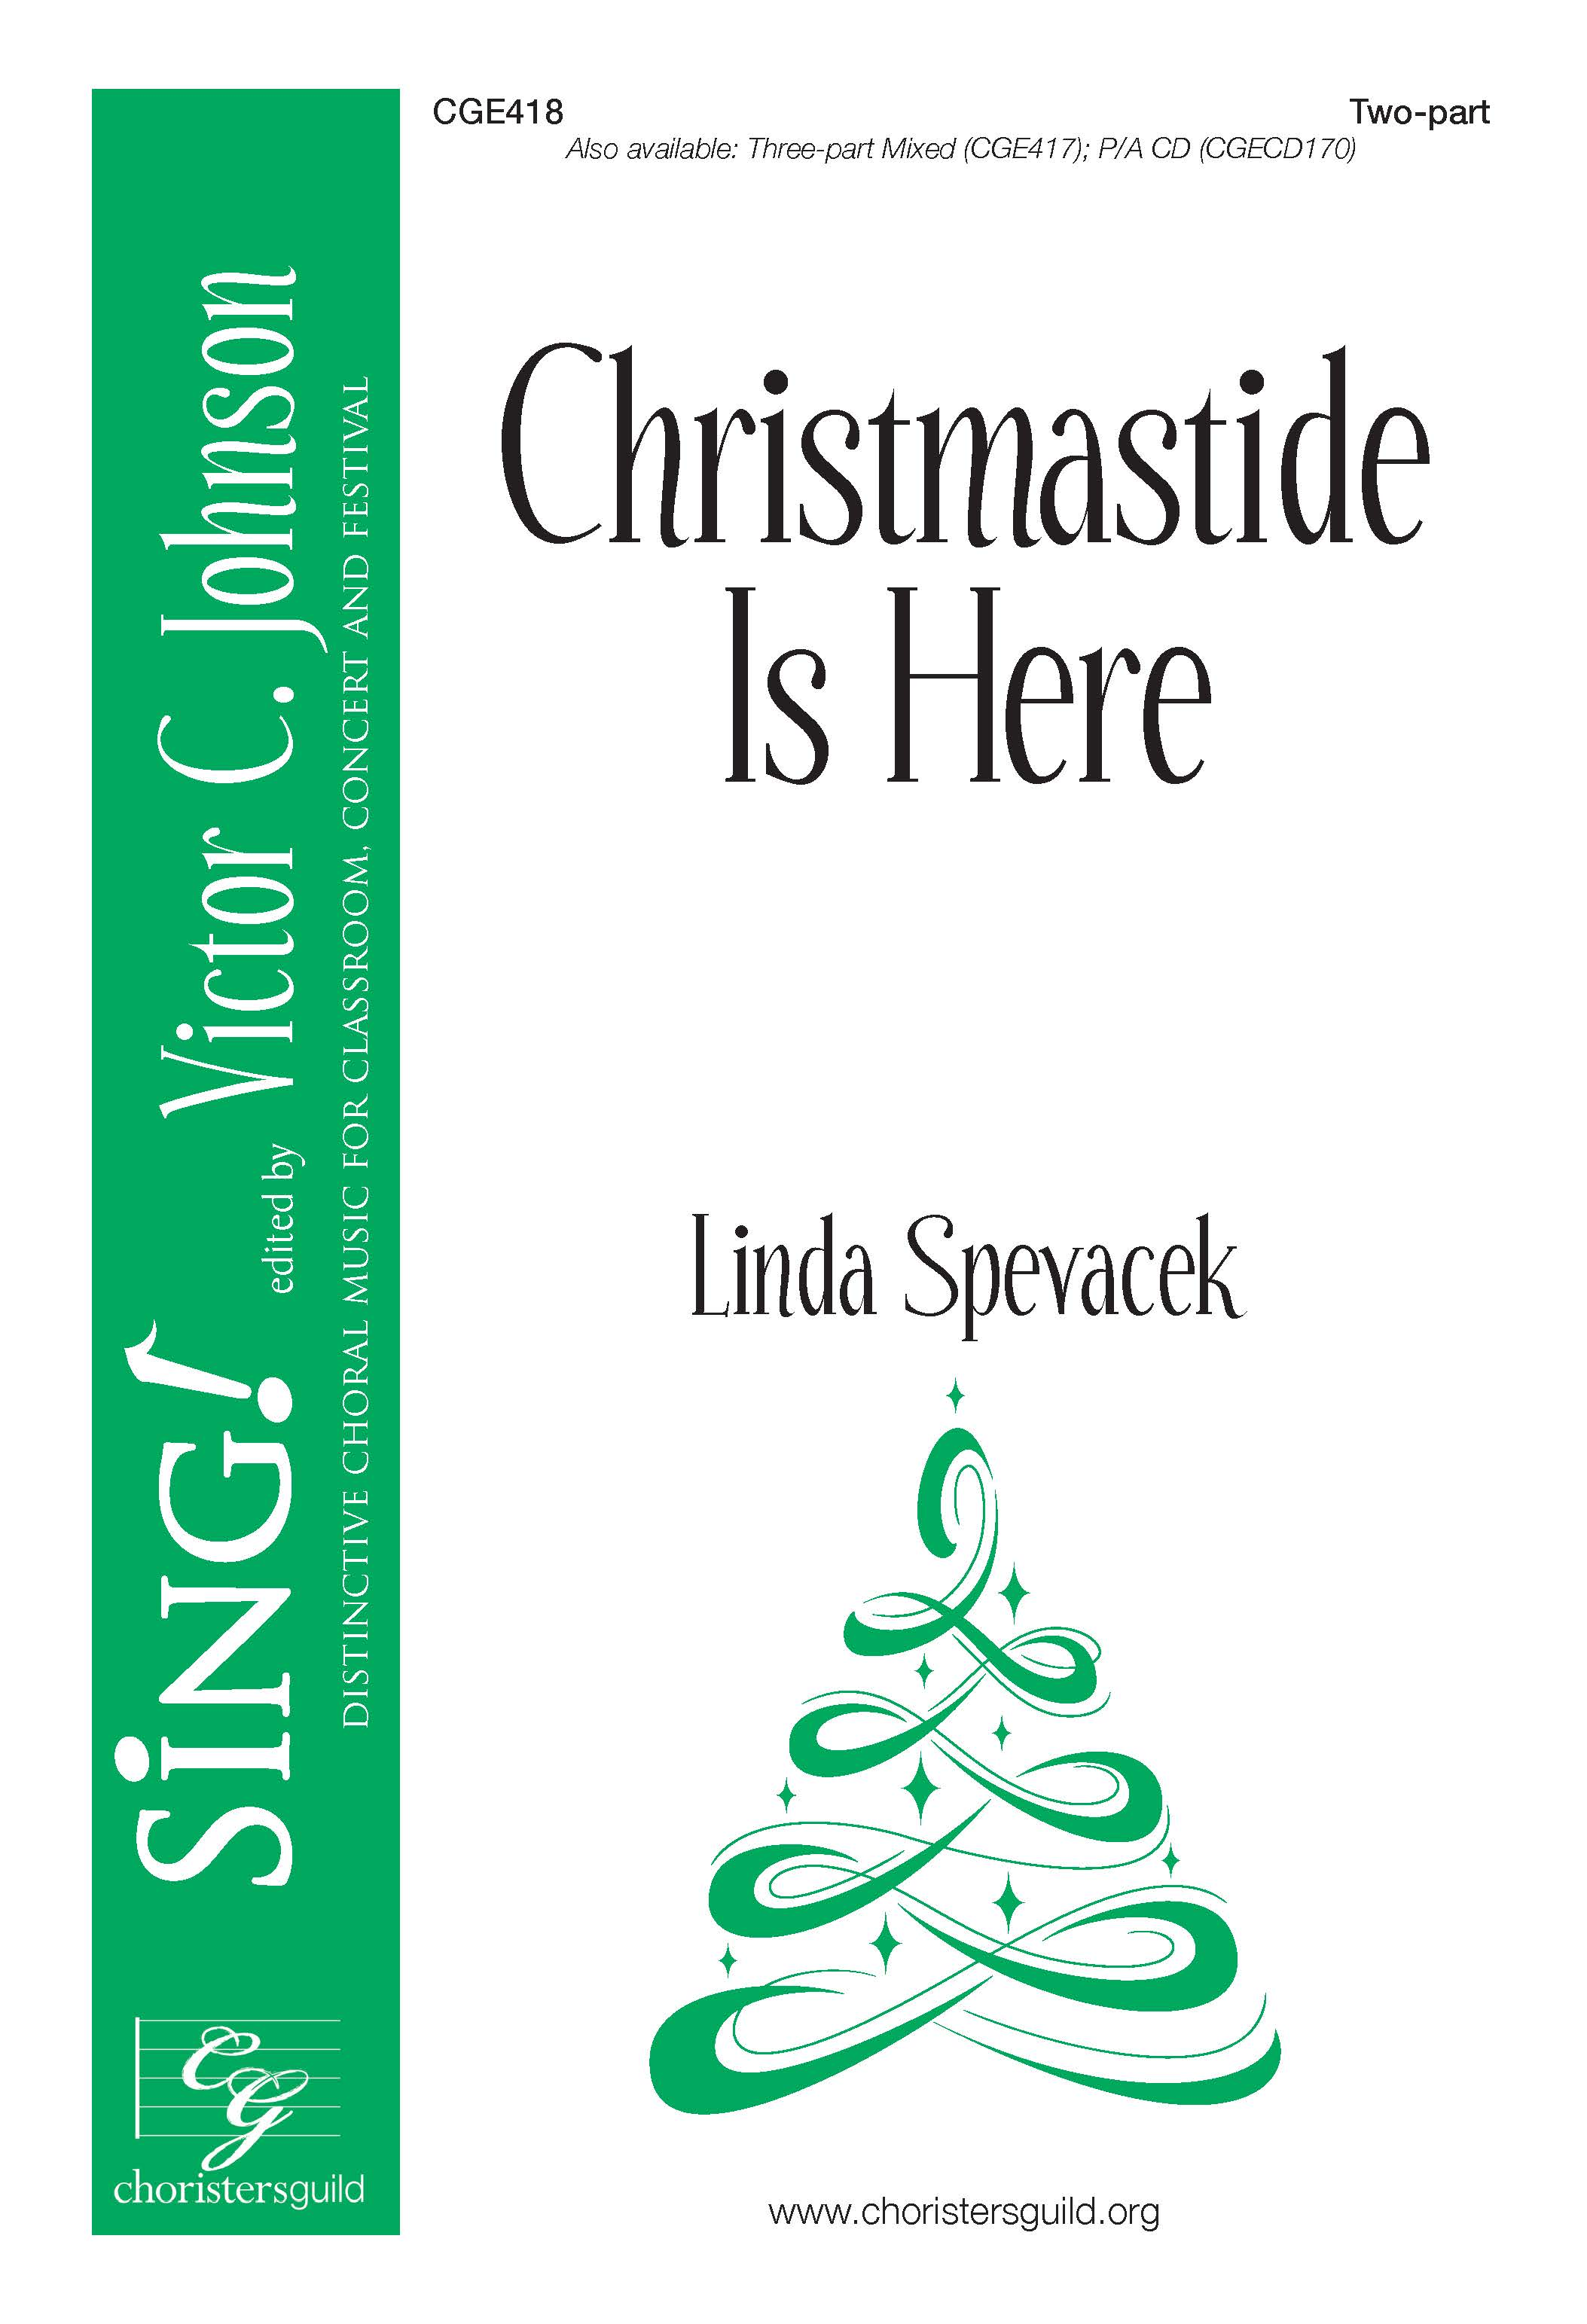 Christmastide Is Here - Two-part